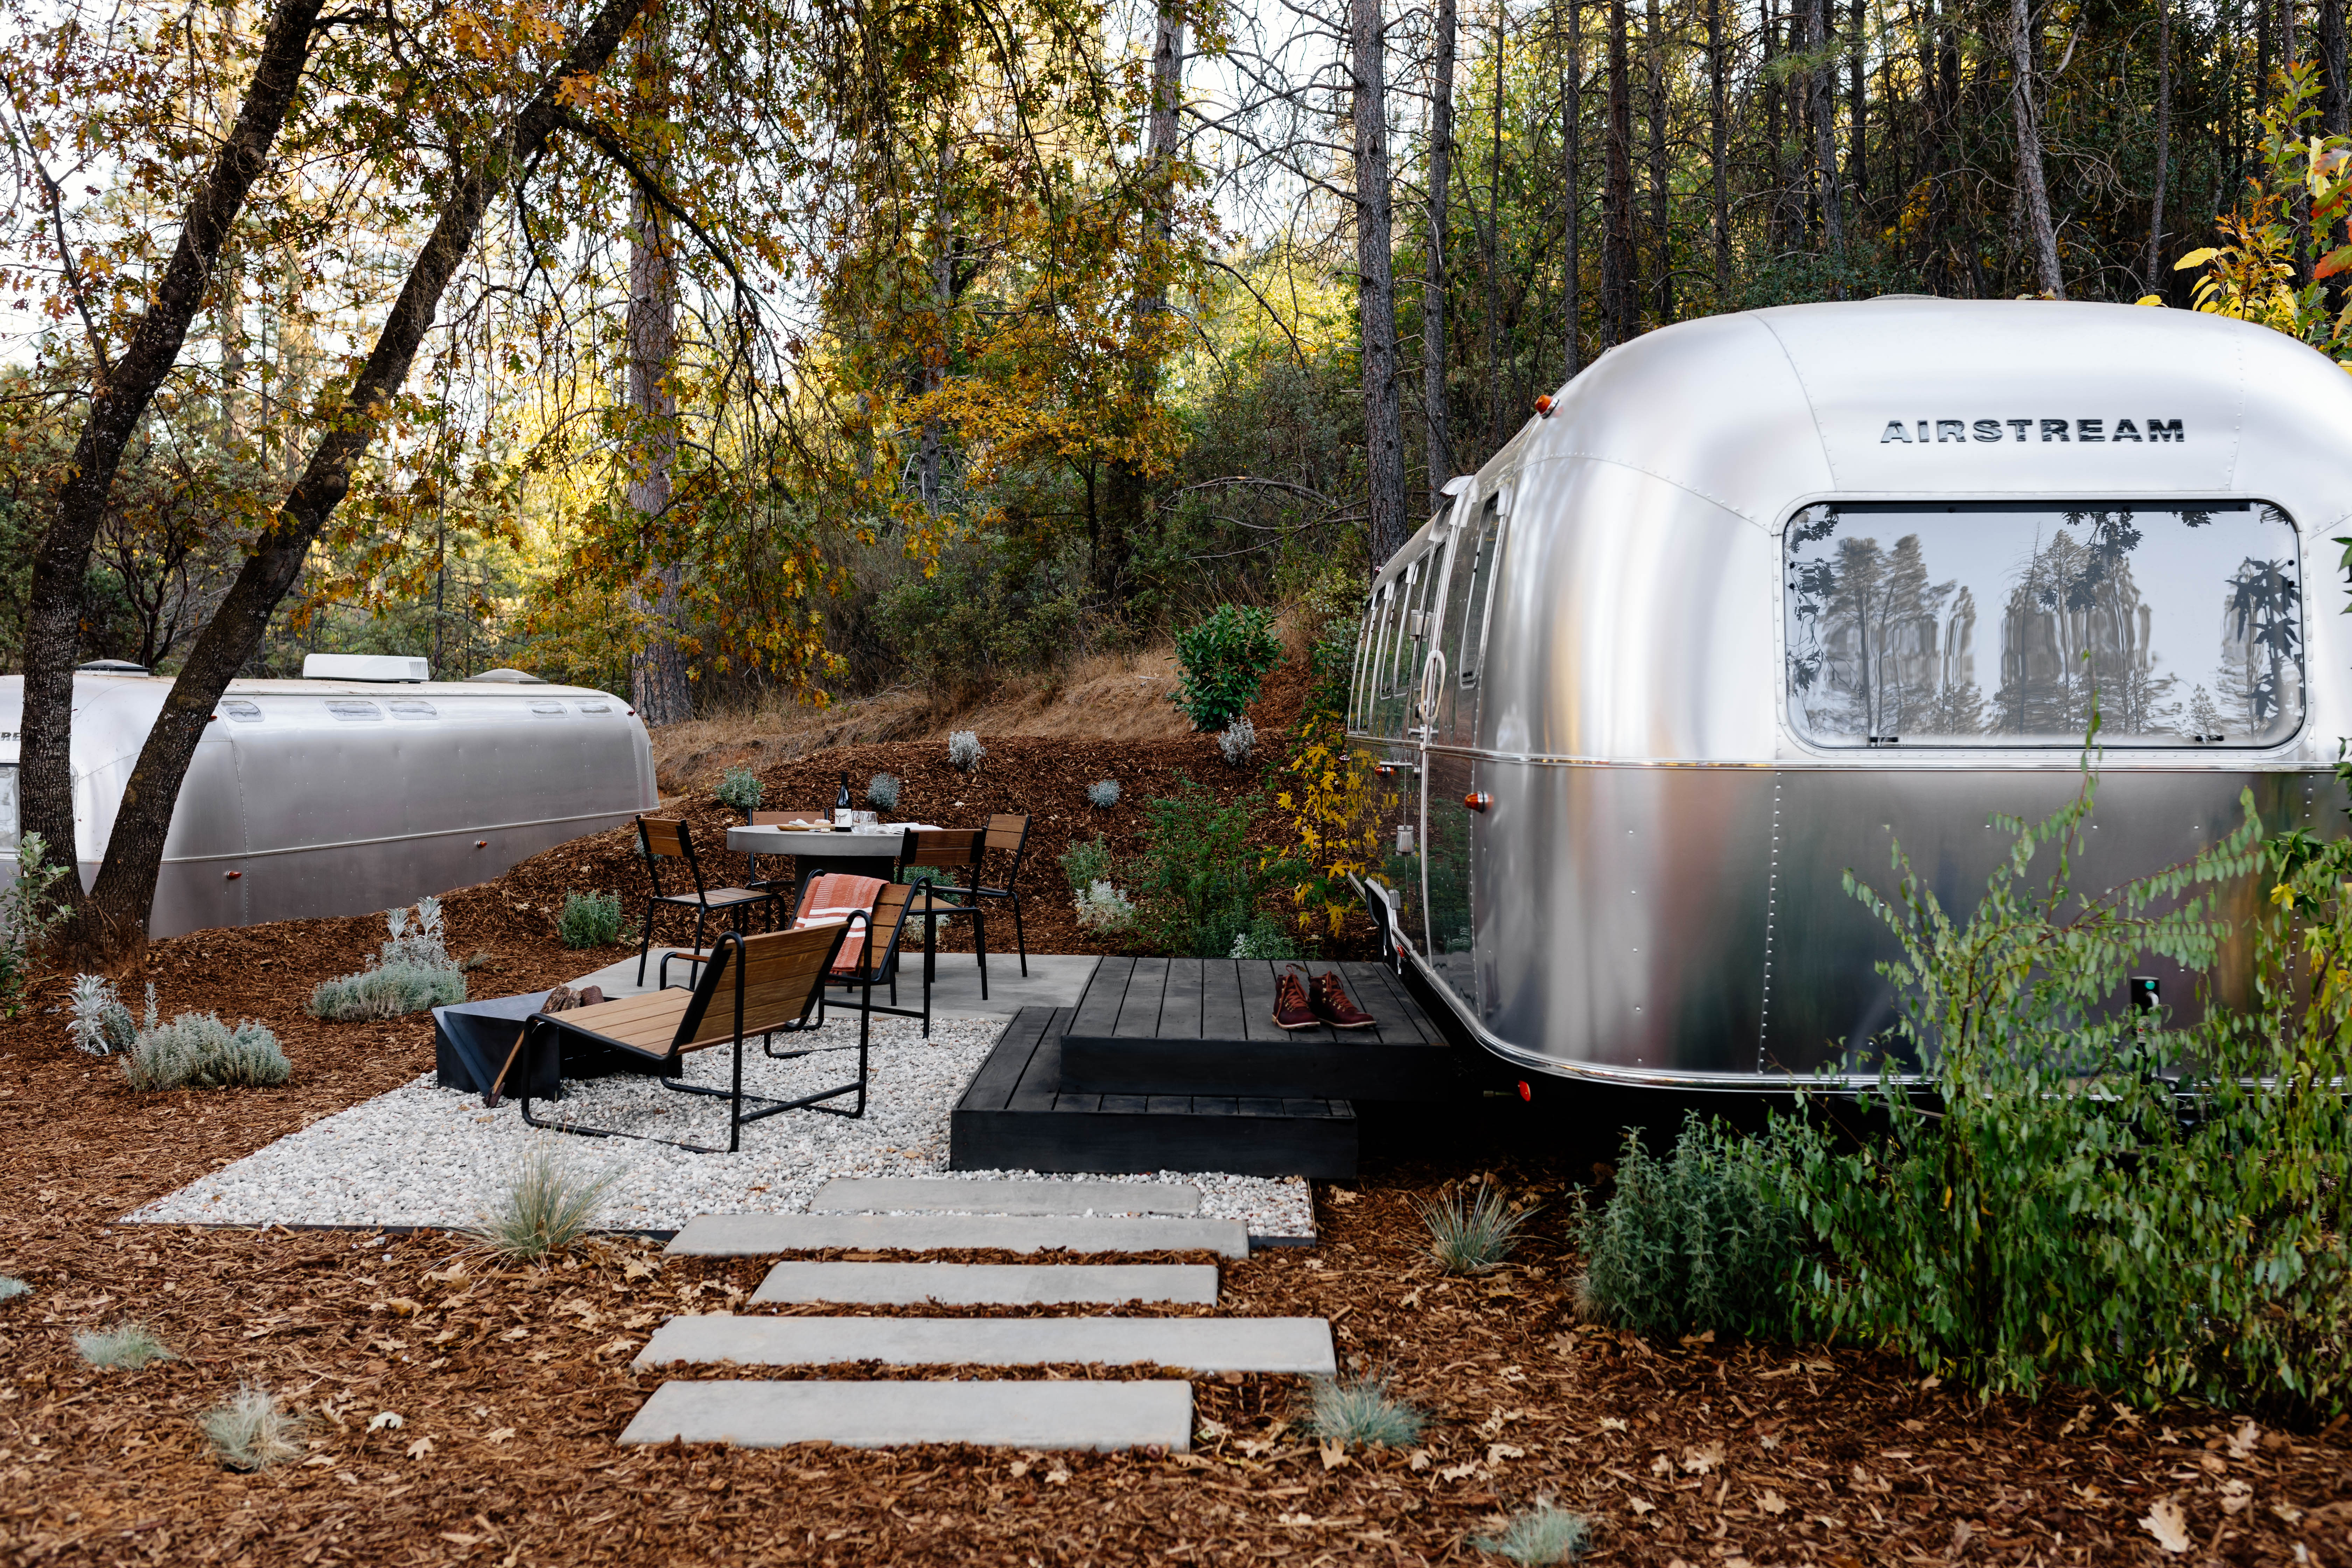 'Airstream hotel' luxury campground opens in Yosemite National Park